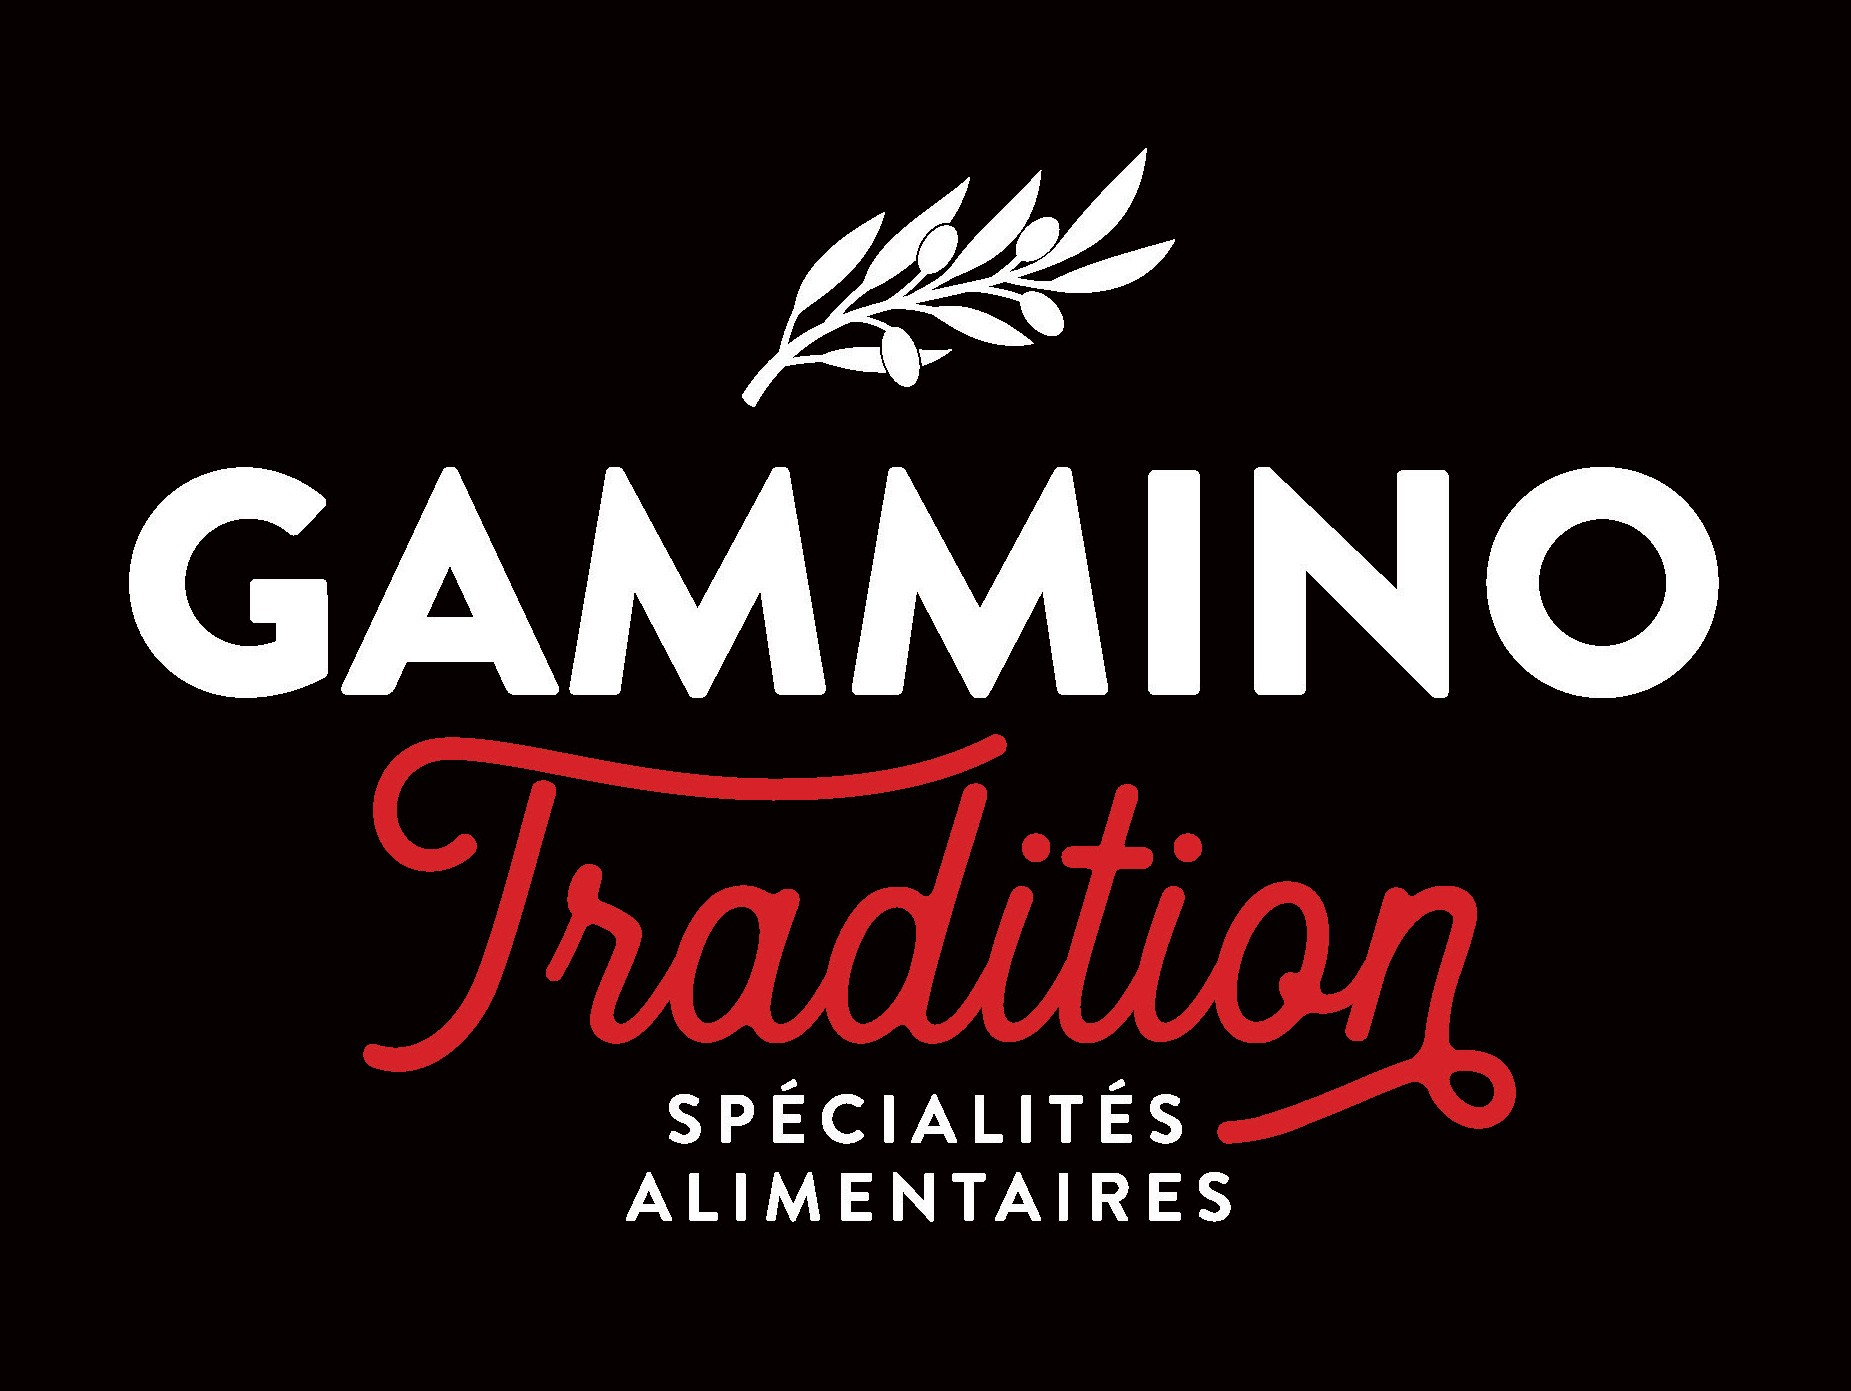 Gammino Tradition